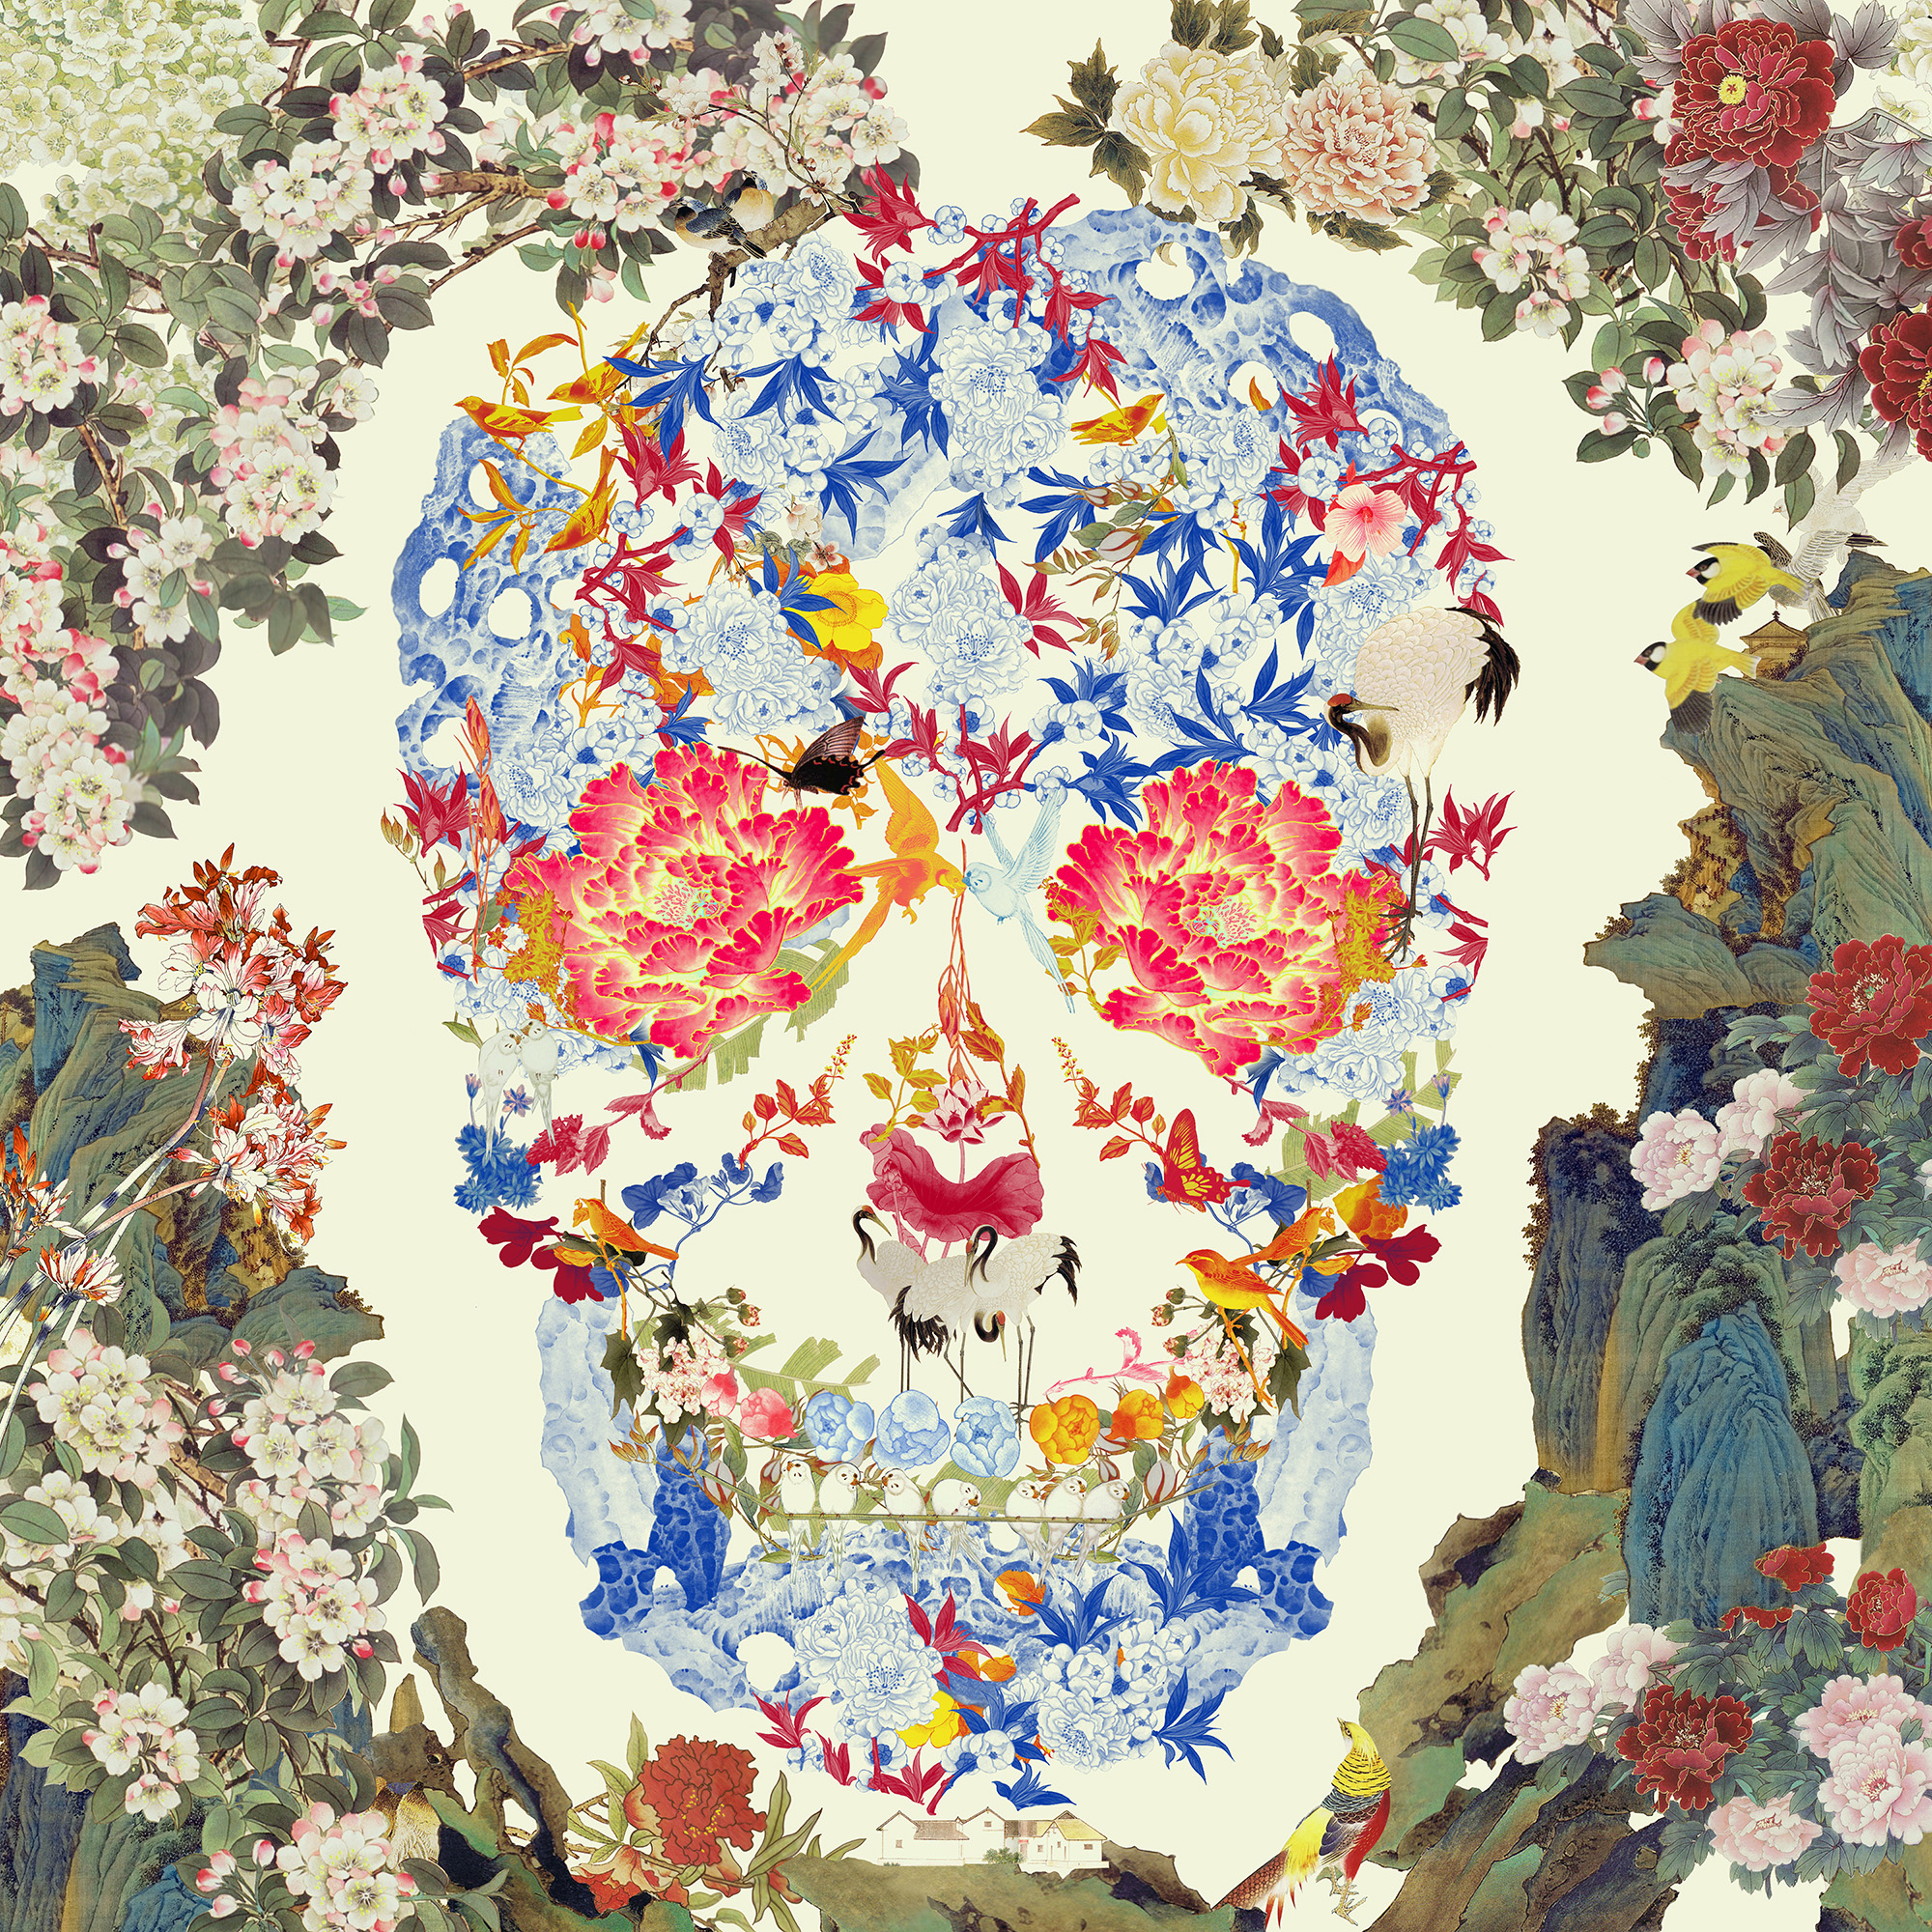 Jacky Tsai 'Chinese Floral Skull, Yellow Lenticular' (31.5 x 31.5 inches) FAD magazine